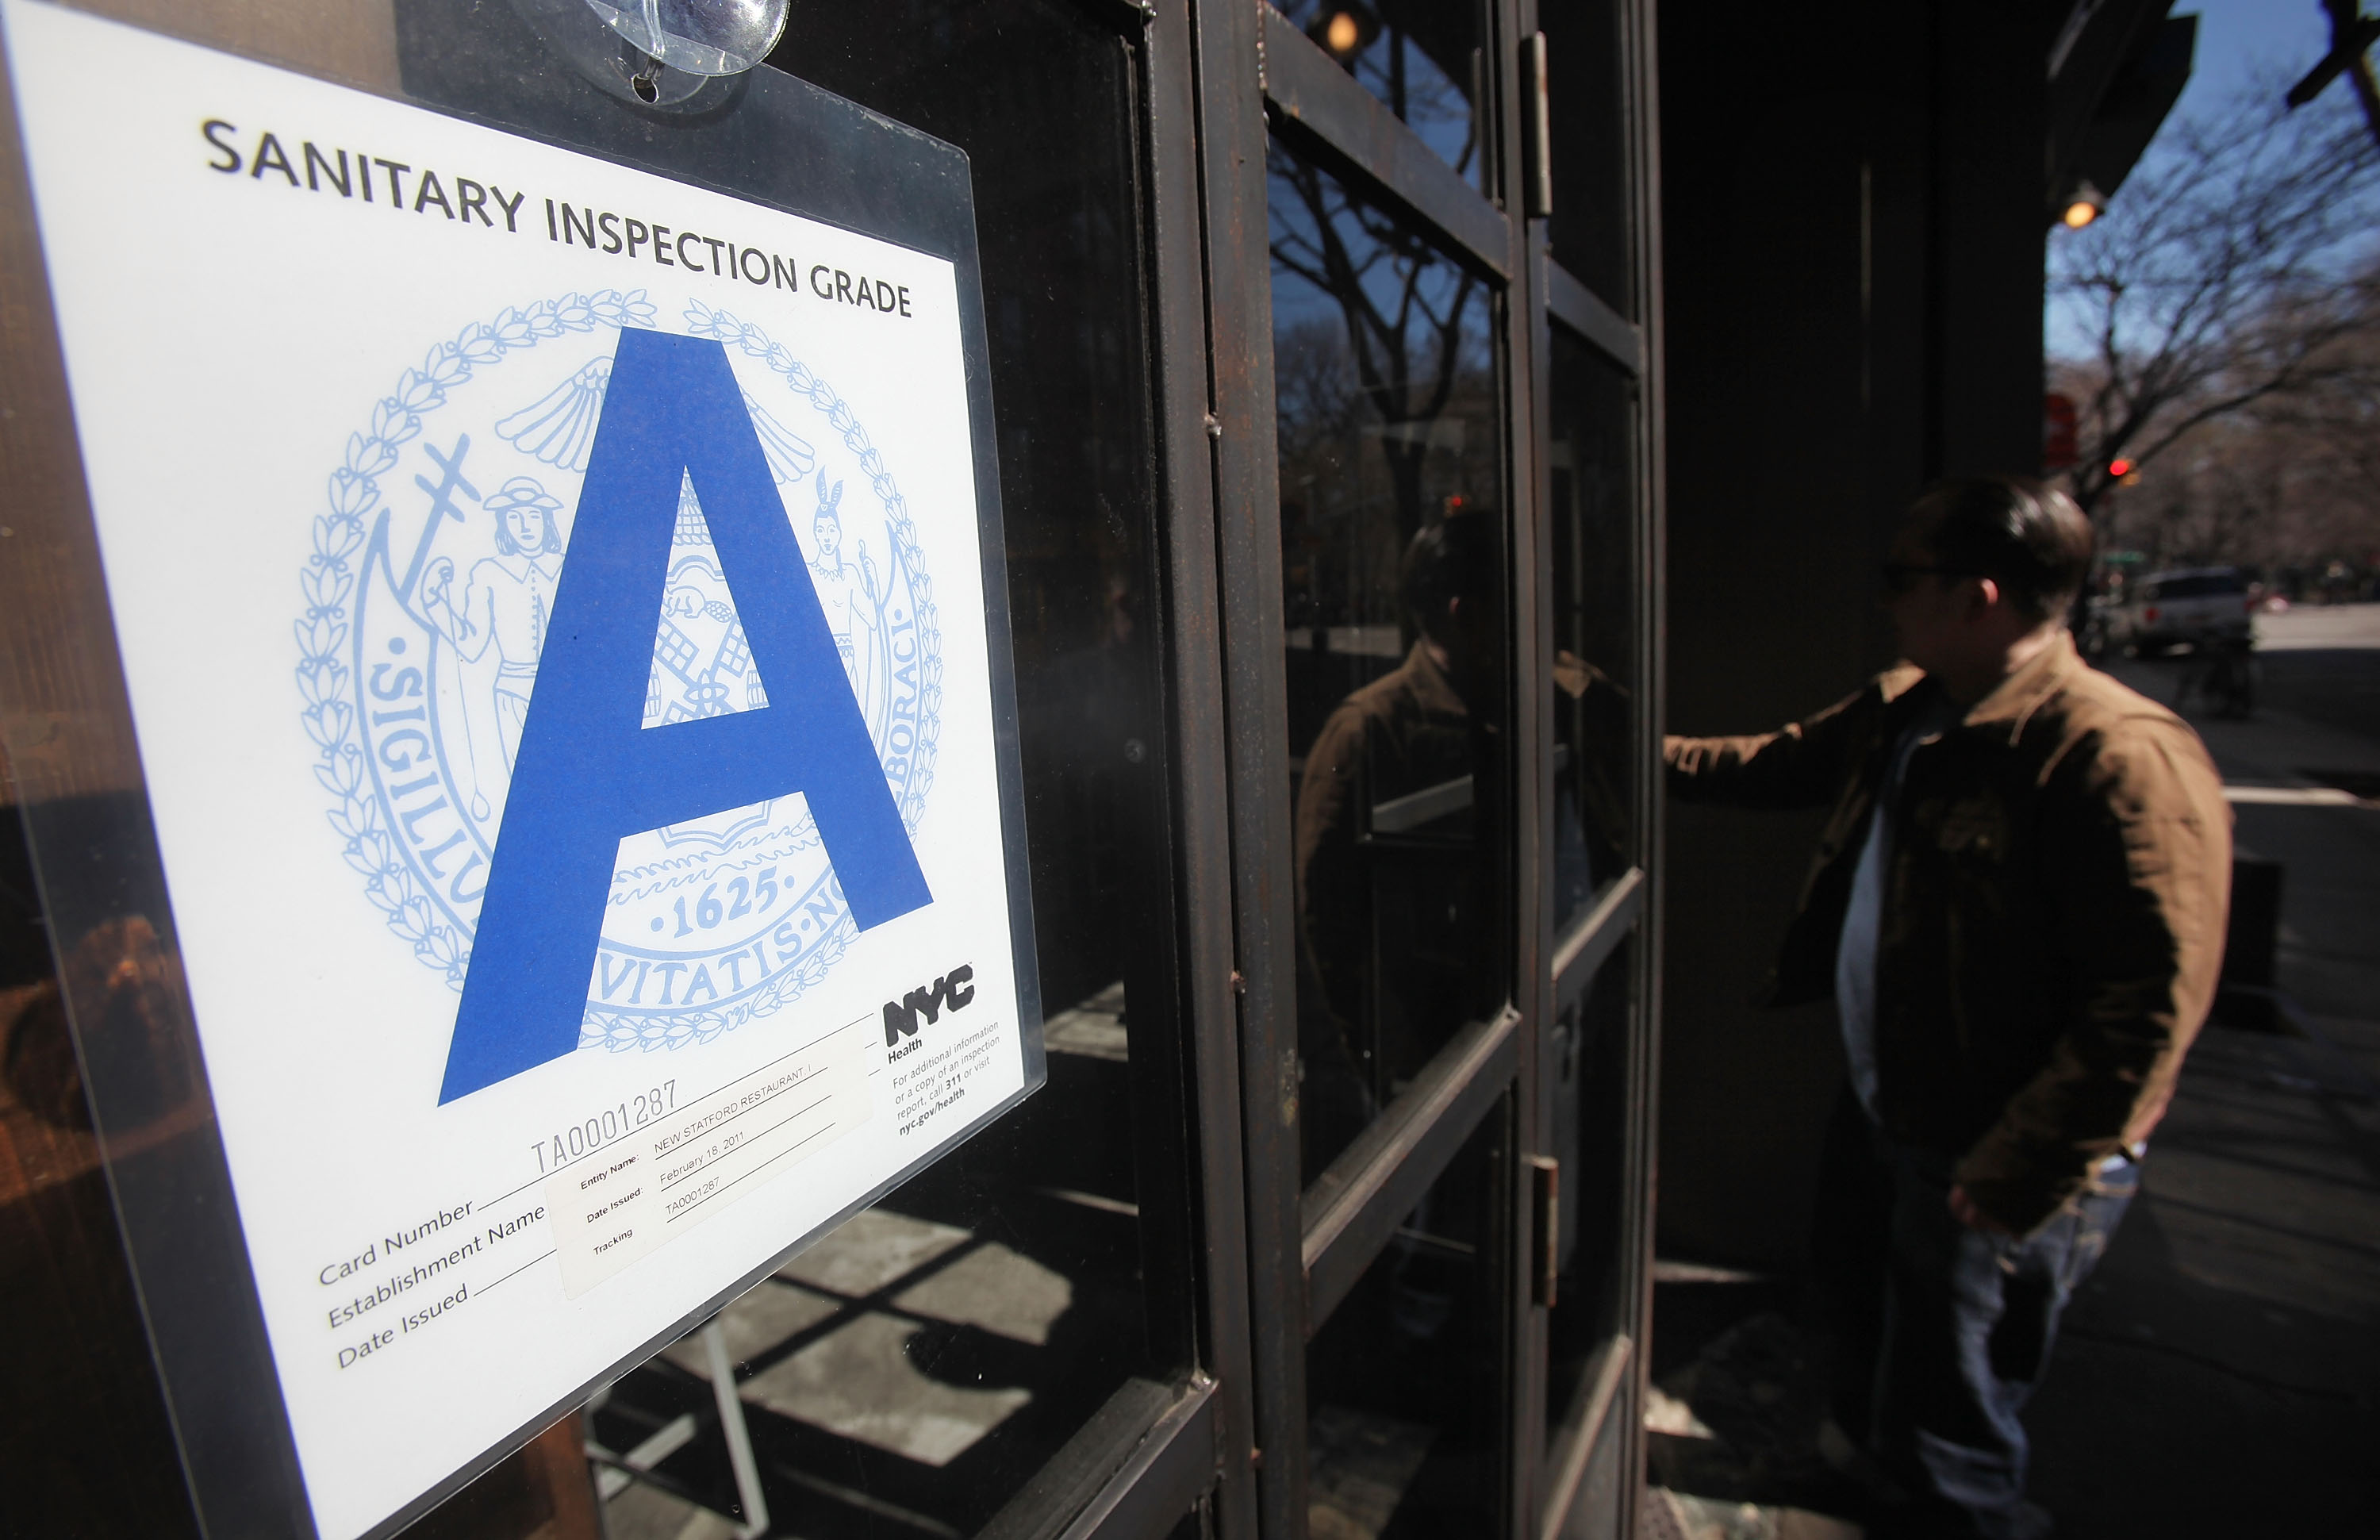 NYC Restaurants Improve Food Safety Practices After Advent Of Rating System